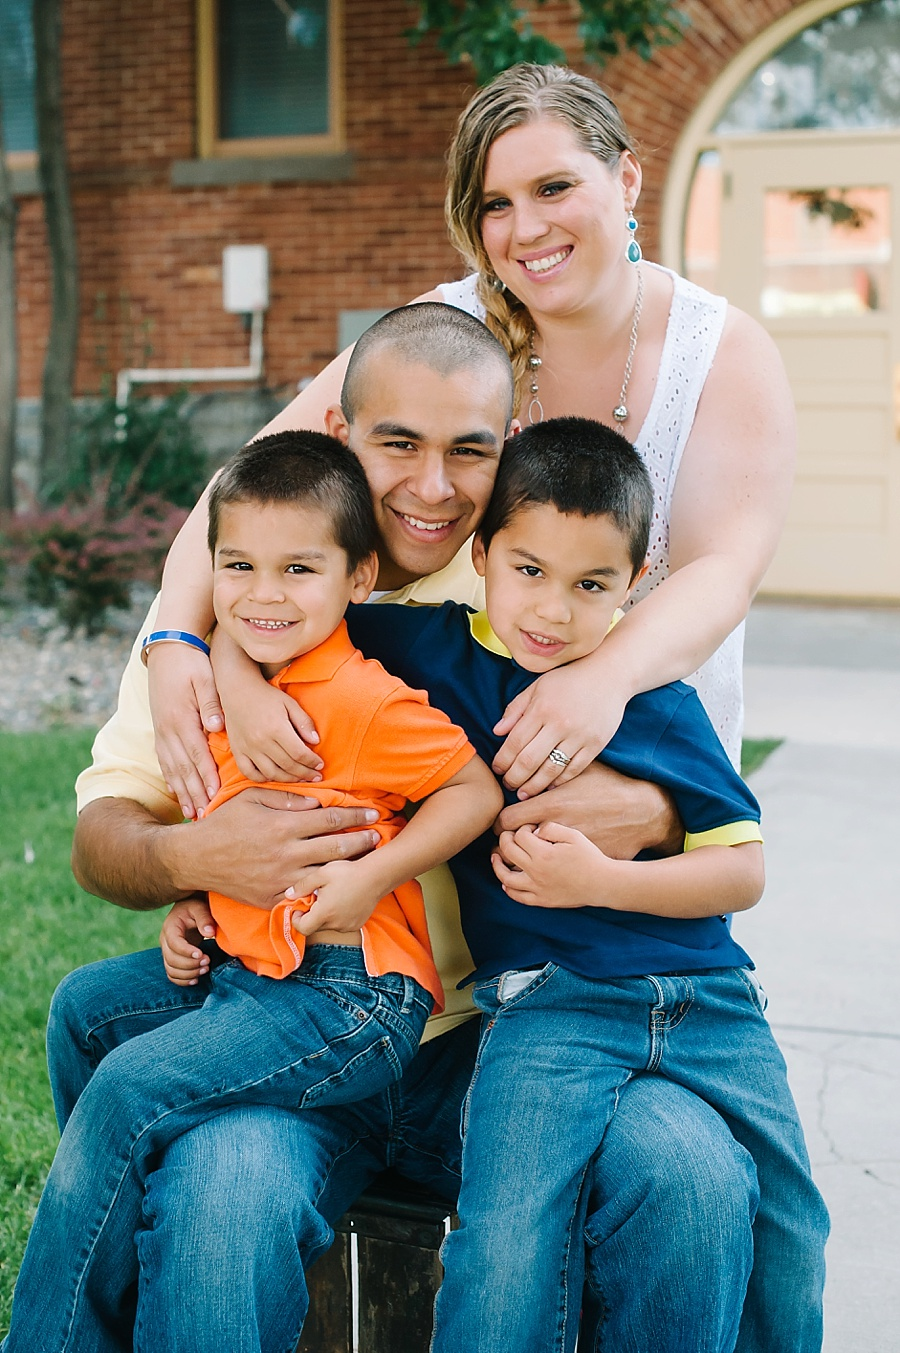 SLC Utah Extended Family Photographer Ali Sumsion 010